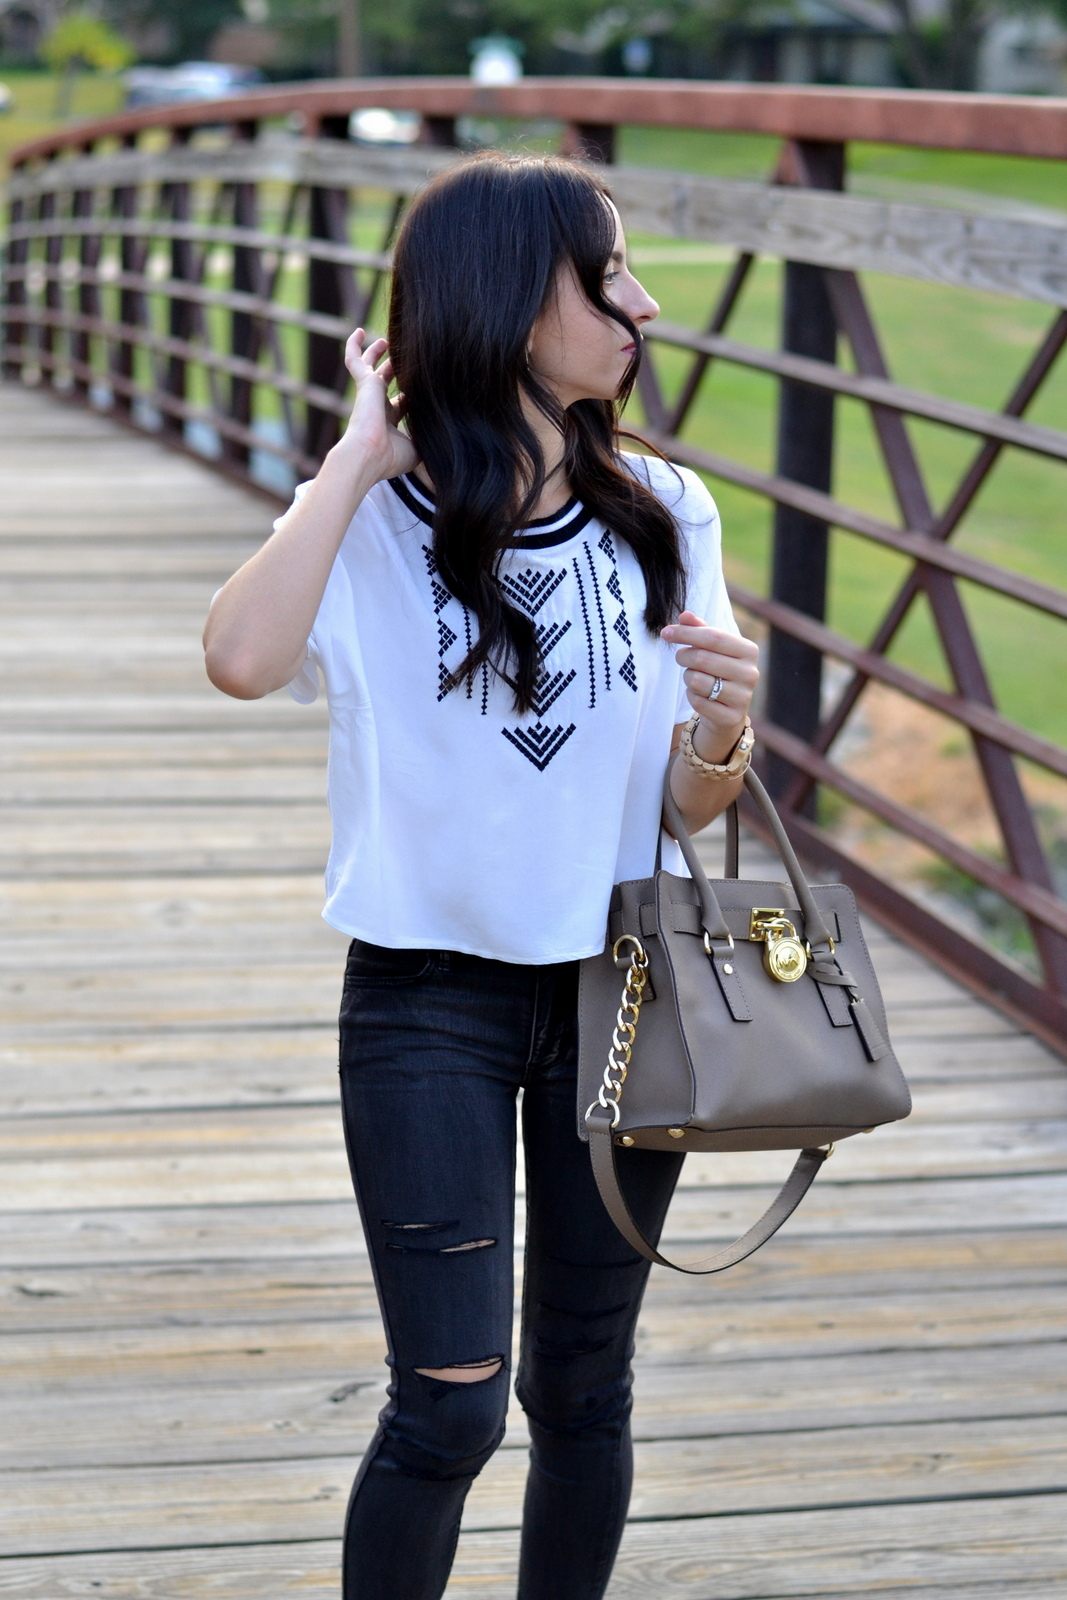 Michael Kors Bag, Ripped Jeans, Black Denim, White Crop Top